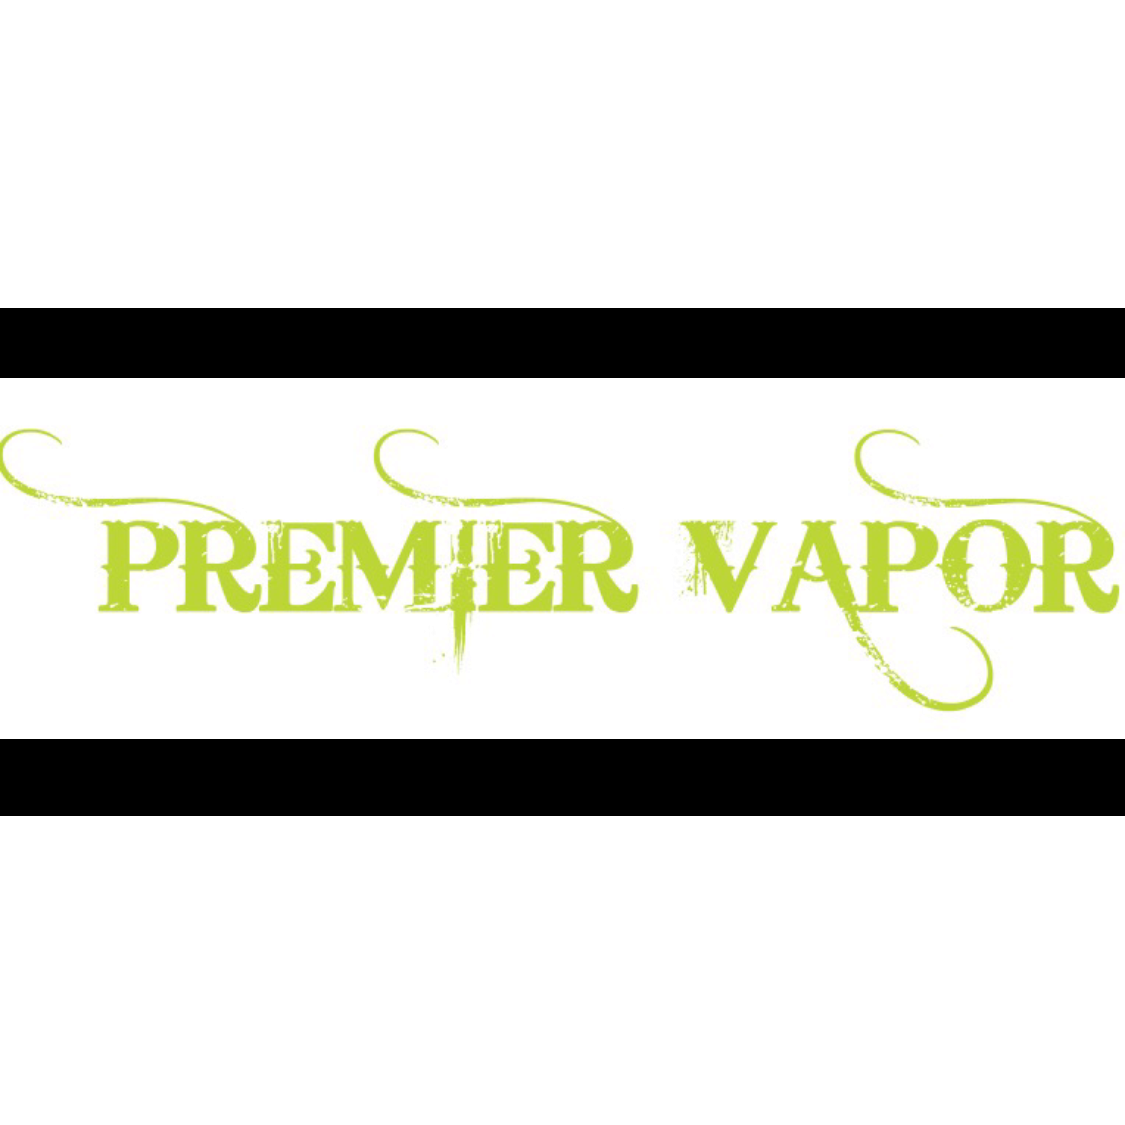 image of the Premier Vapor